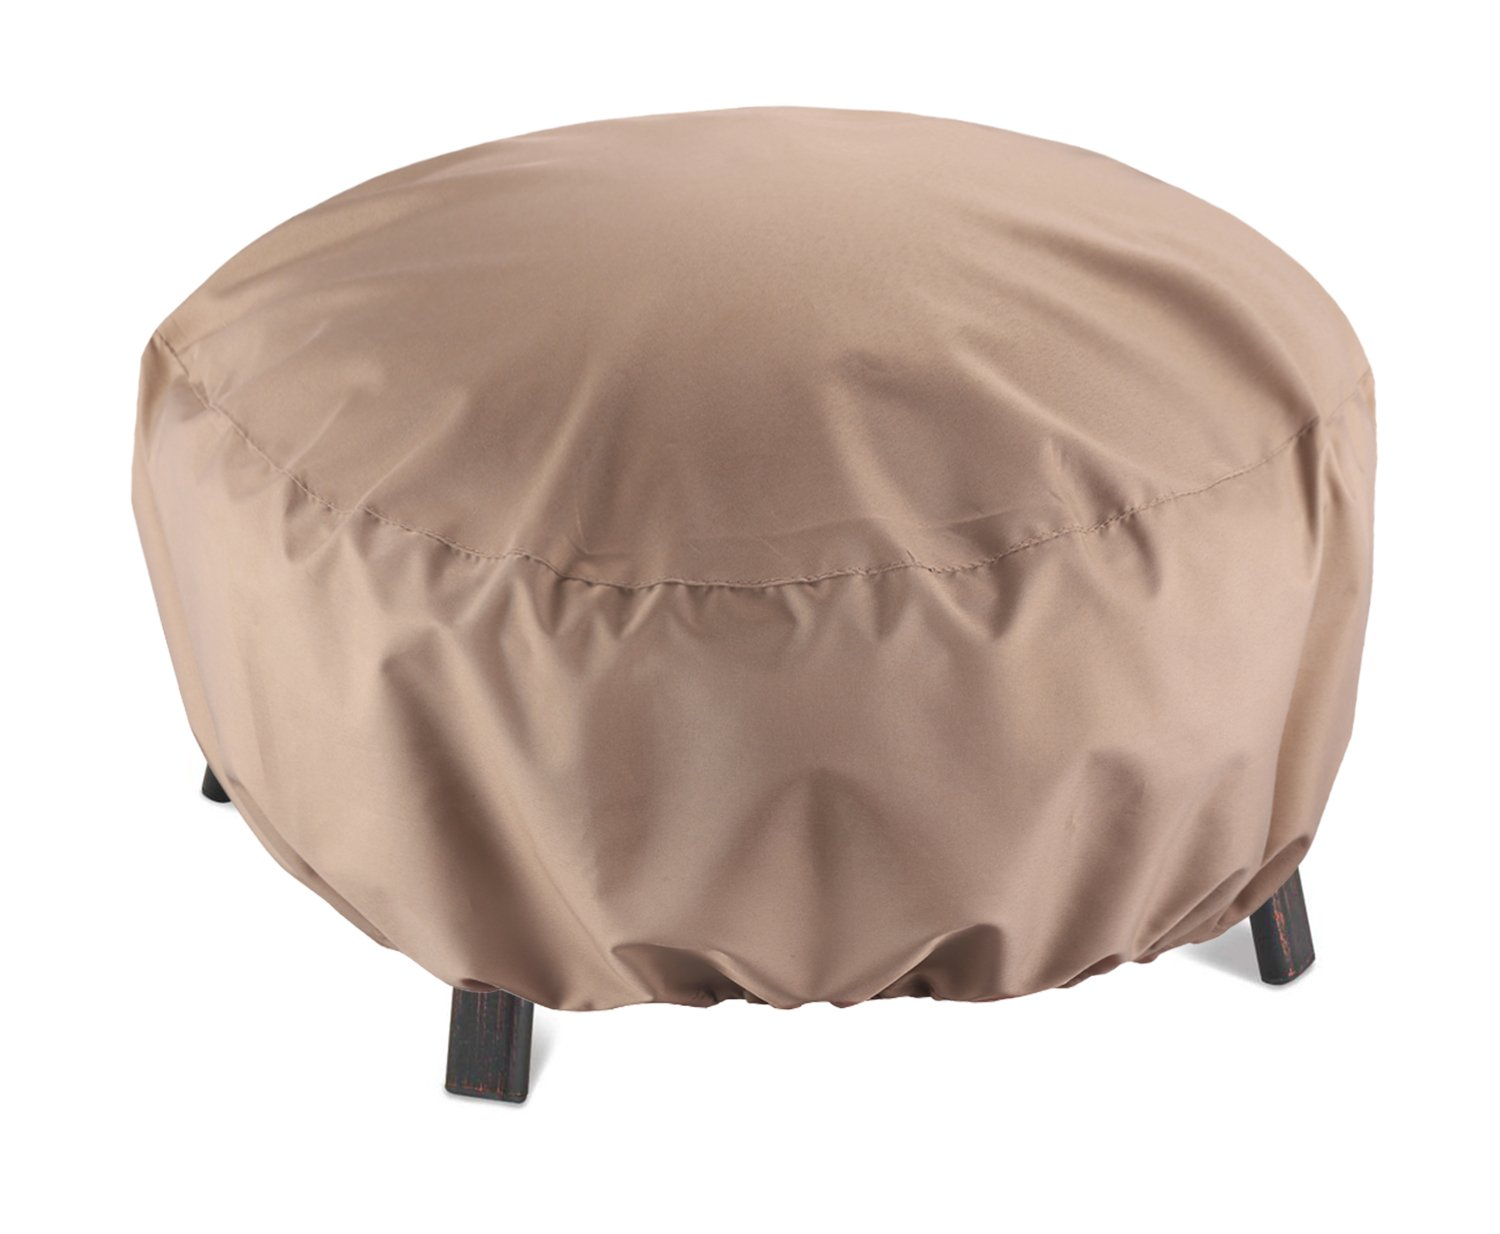 SunPatio Outdoor Round Fire Pit Cover, Kettle Cover, Ottoman Cover, 32''Diax14''H, Lightweight, Water Resistant, Eco-Friendly, All Weather Protection, Beige